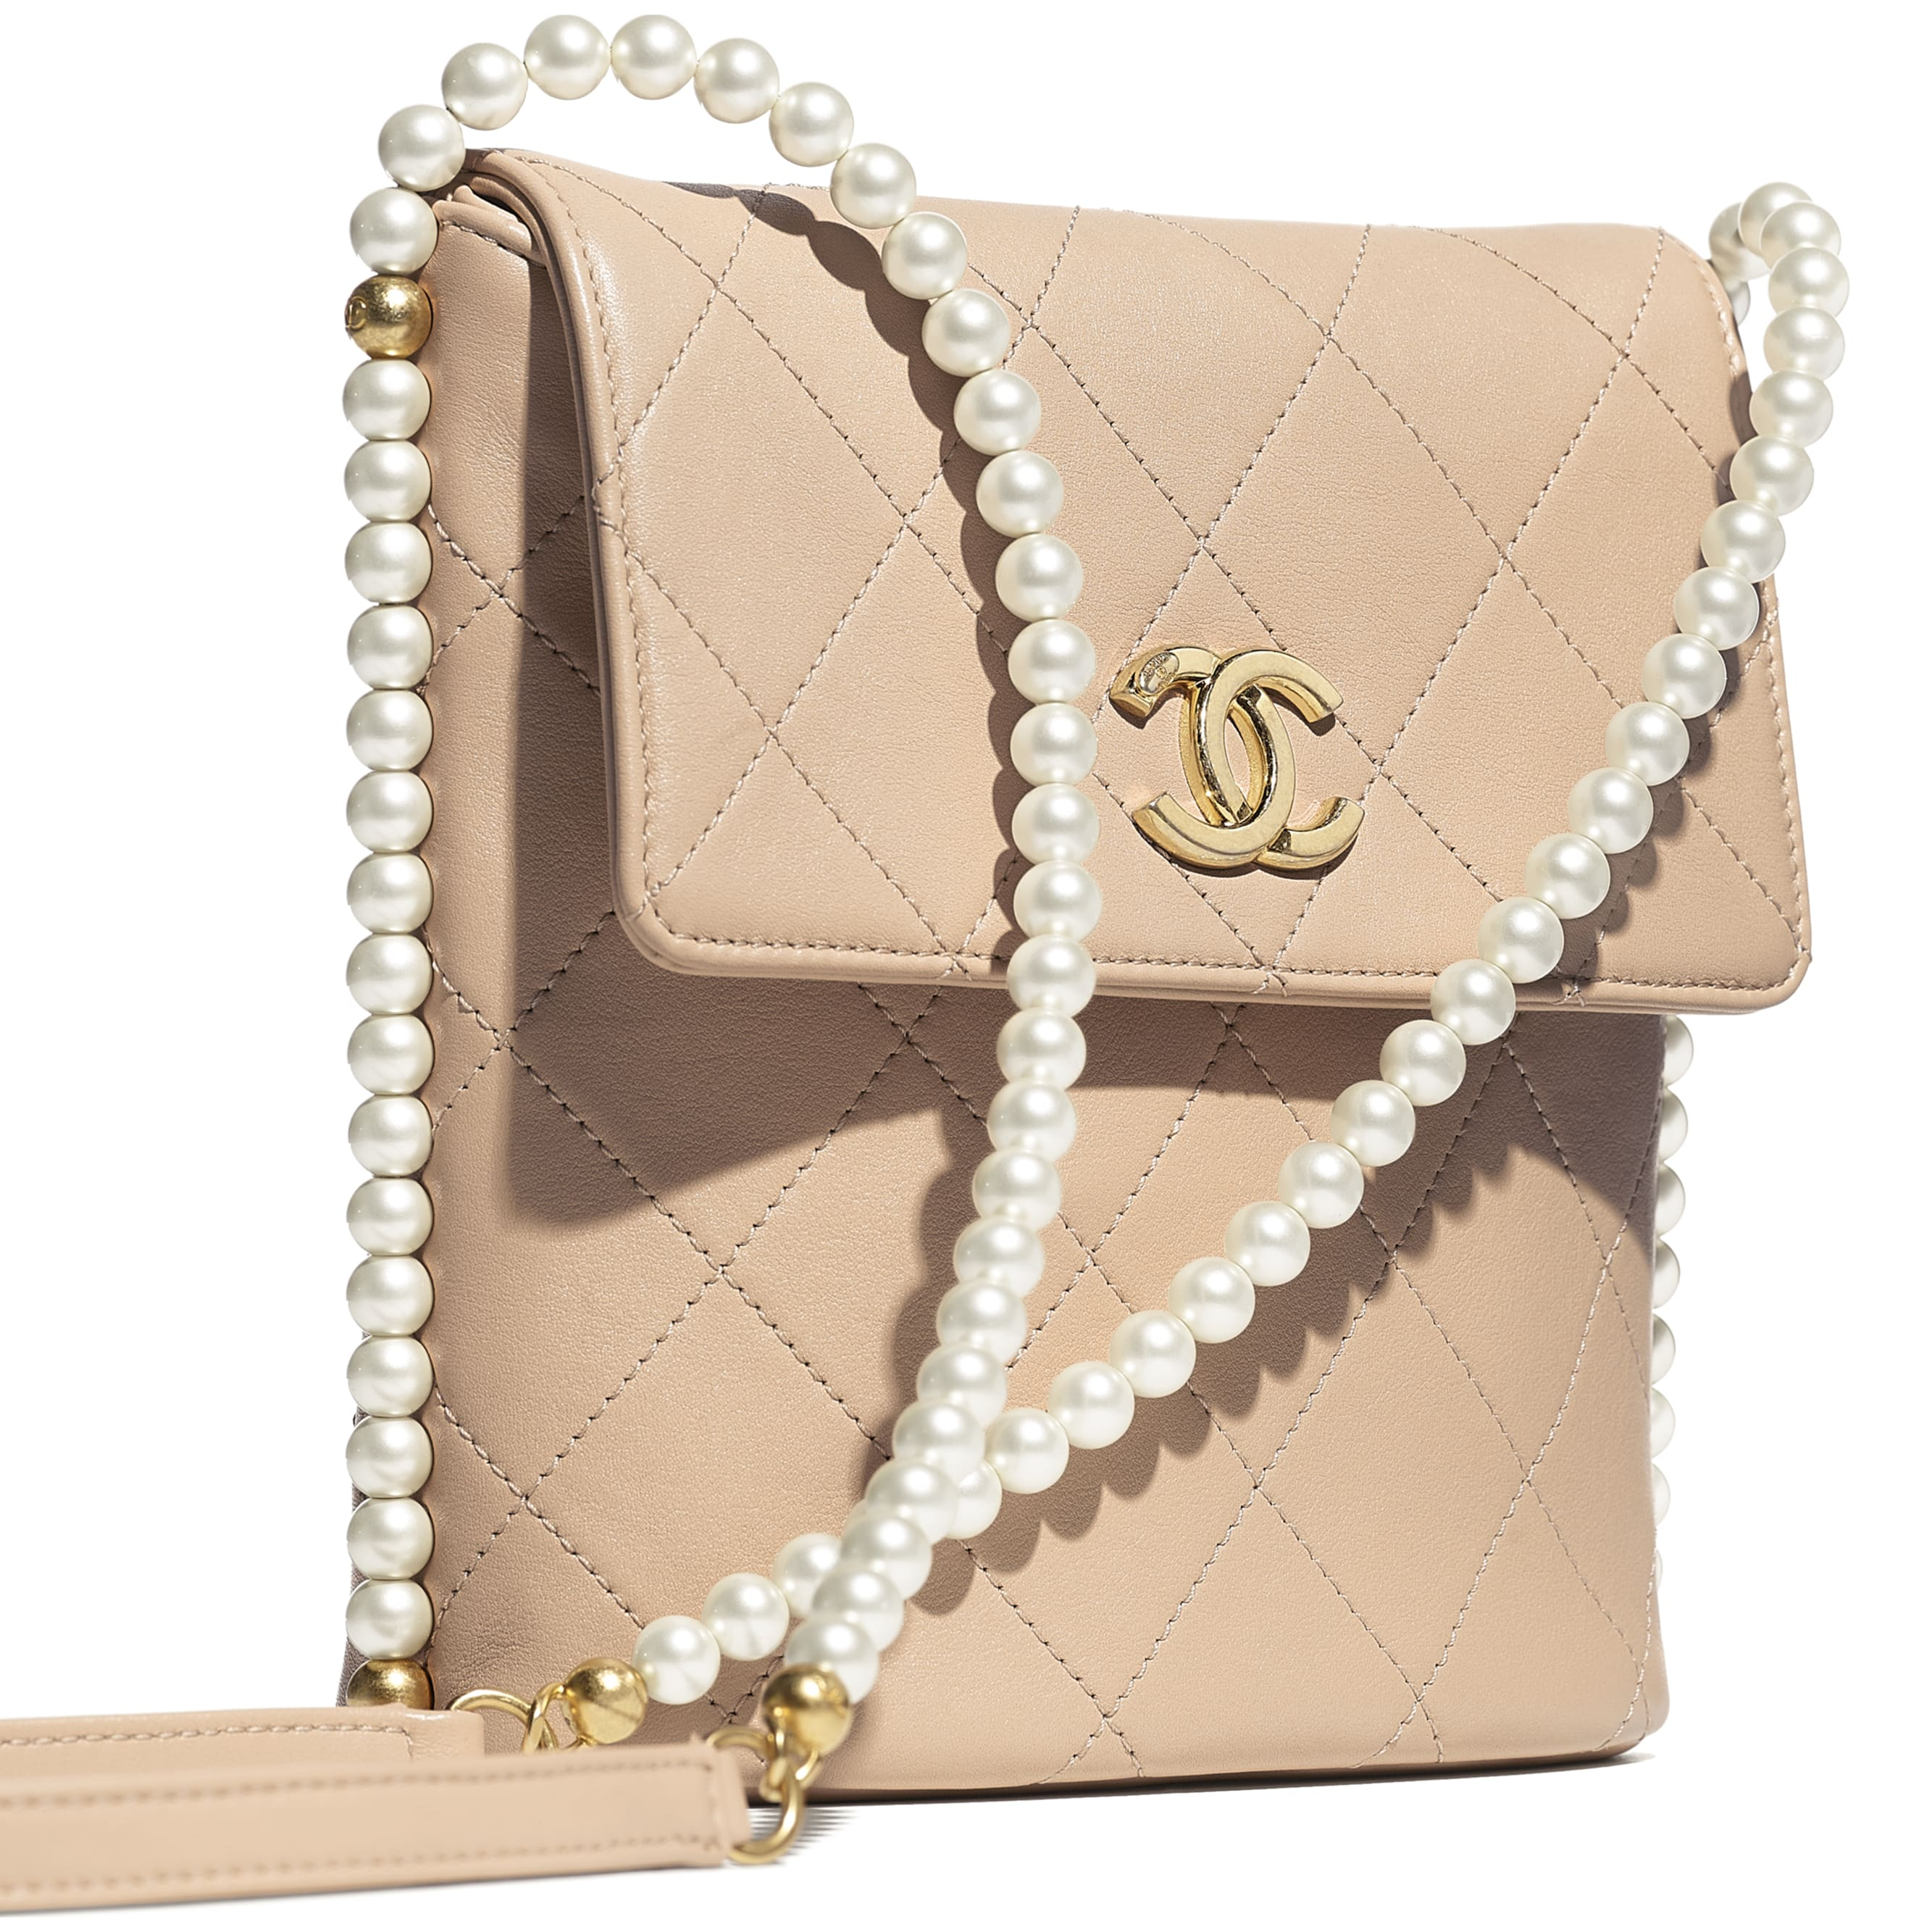 Small Hobo Bag - Beige - Calfskin, Imitation Pearls & Gold-Tone Metal - CHANEL - Extra view - see standard sized version